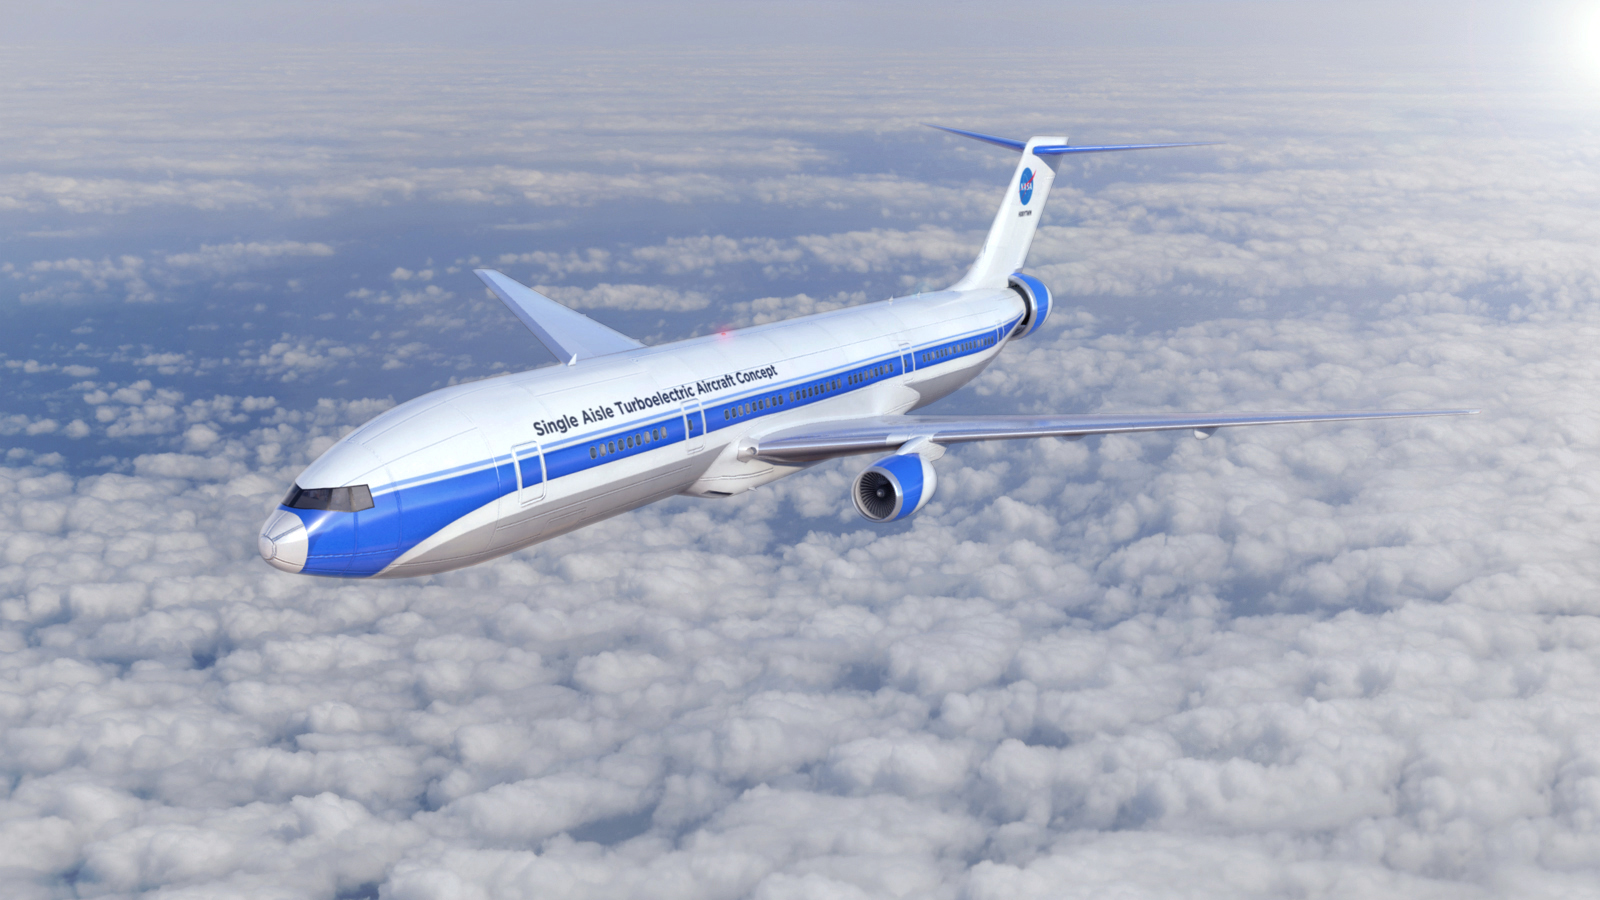 Nasa U S Industry Aim To Electrify Commercial Aviation Nasa